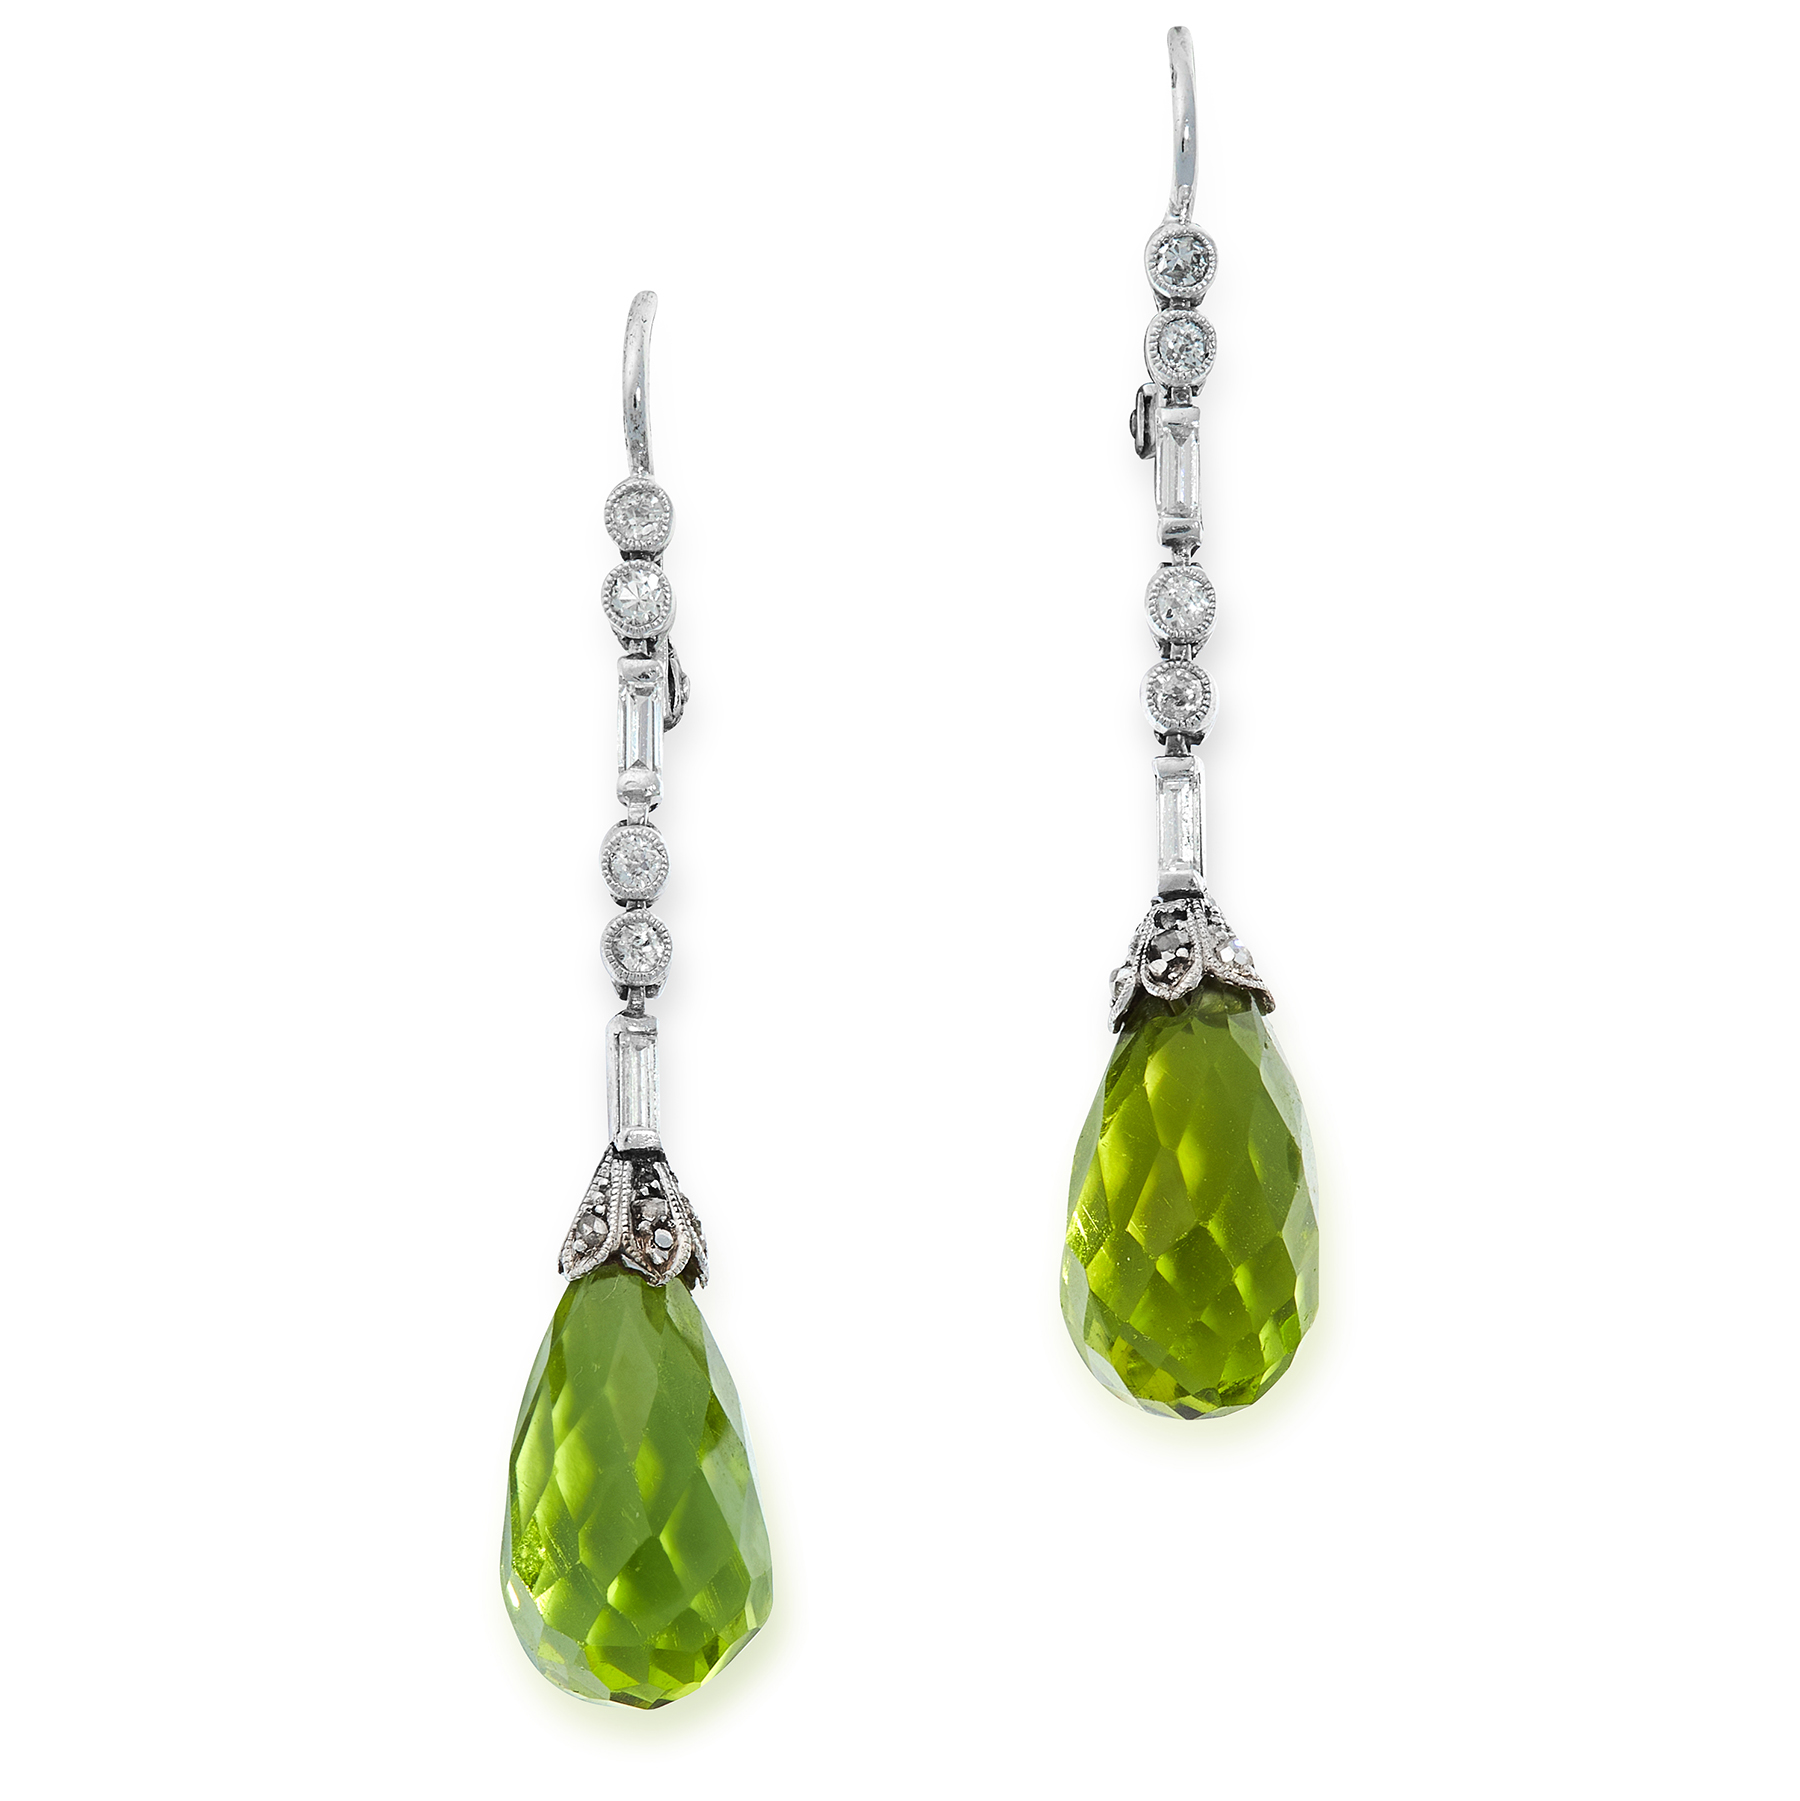 A PAIR OF ART DECO PERIDOT AND DIAMOND EARRINGS, EARLY 20TH CENTURY each set with a briolette drop - Image 2 of 2